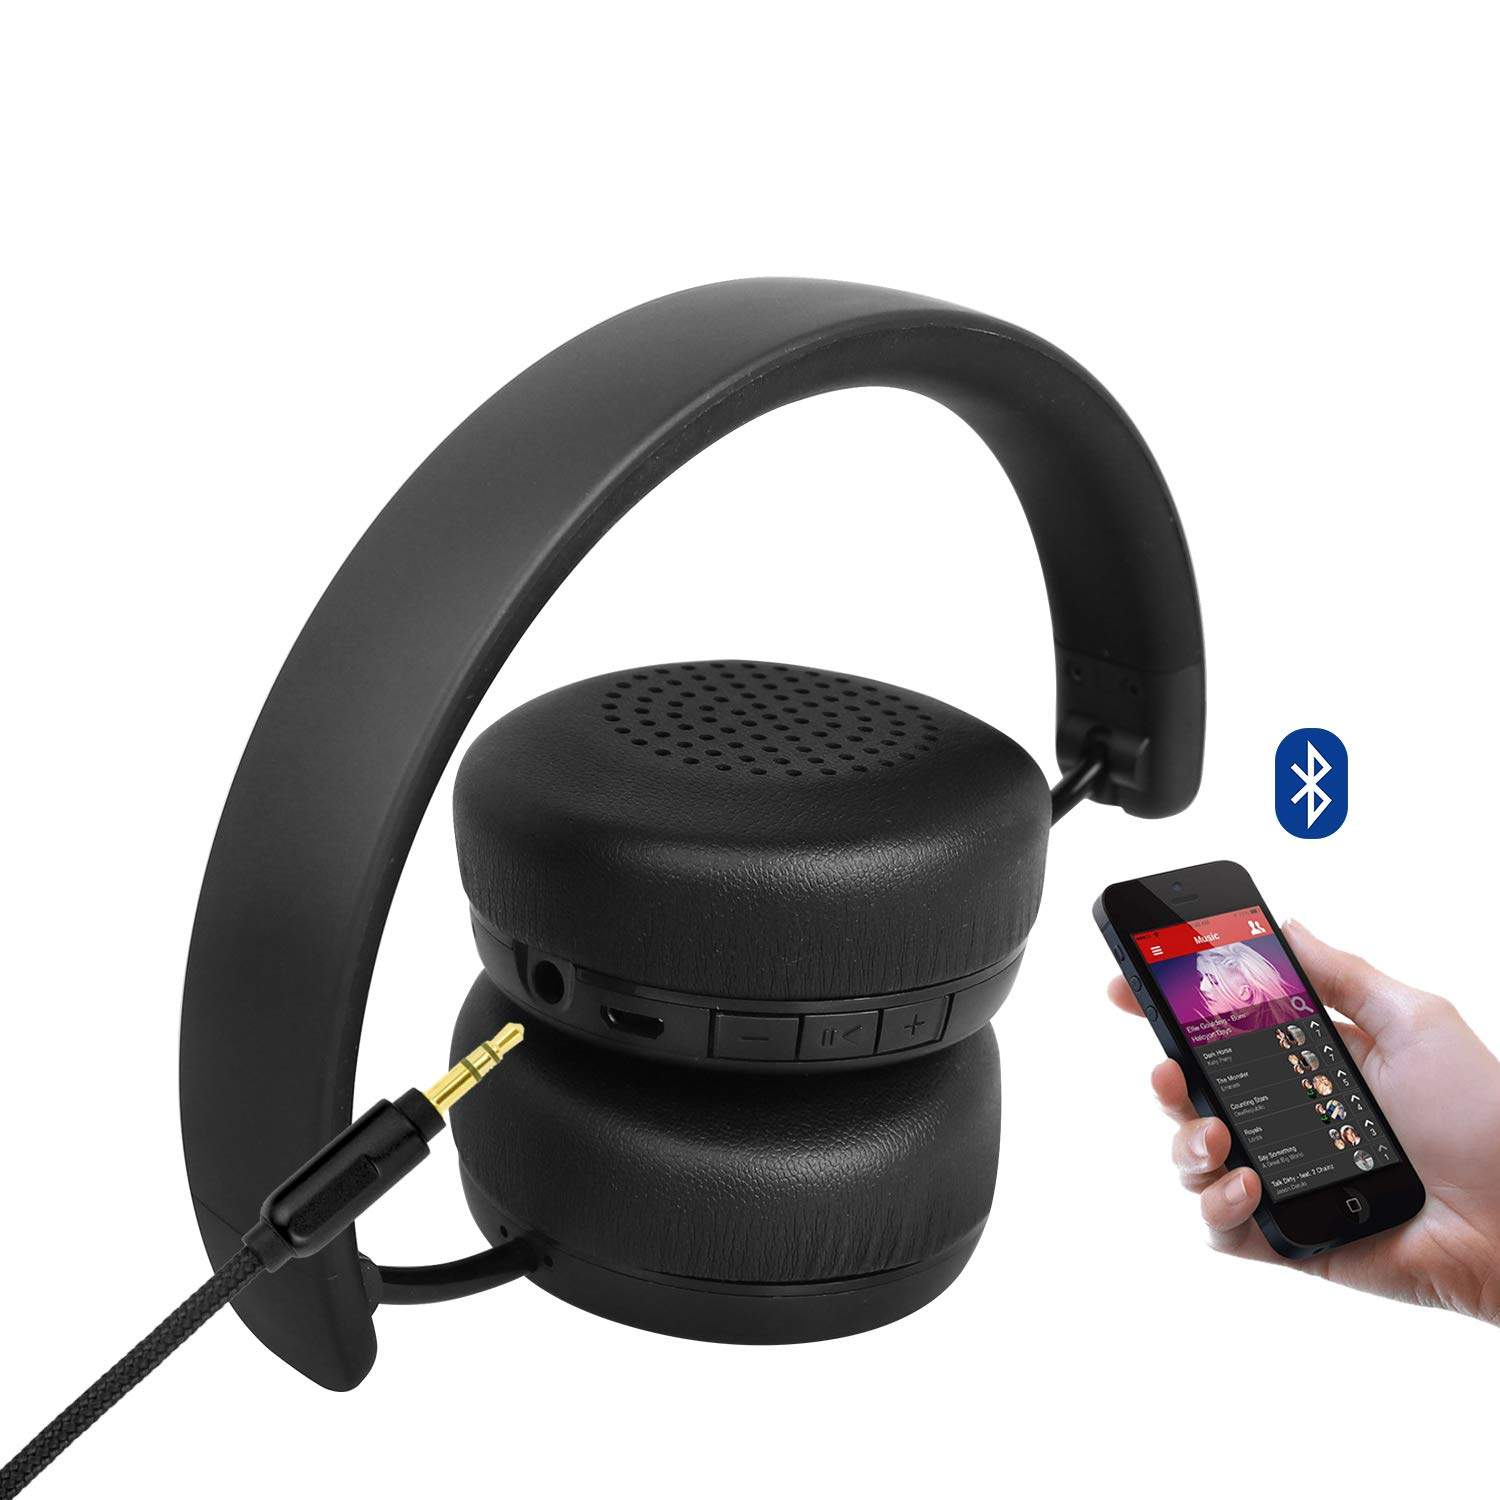 Boat Rockerz 440 Wireless Bluetooth Headset With In-Built Mic (Carbon Black)